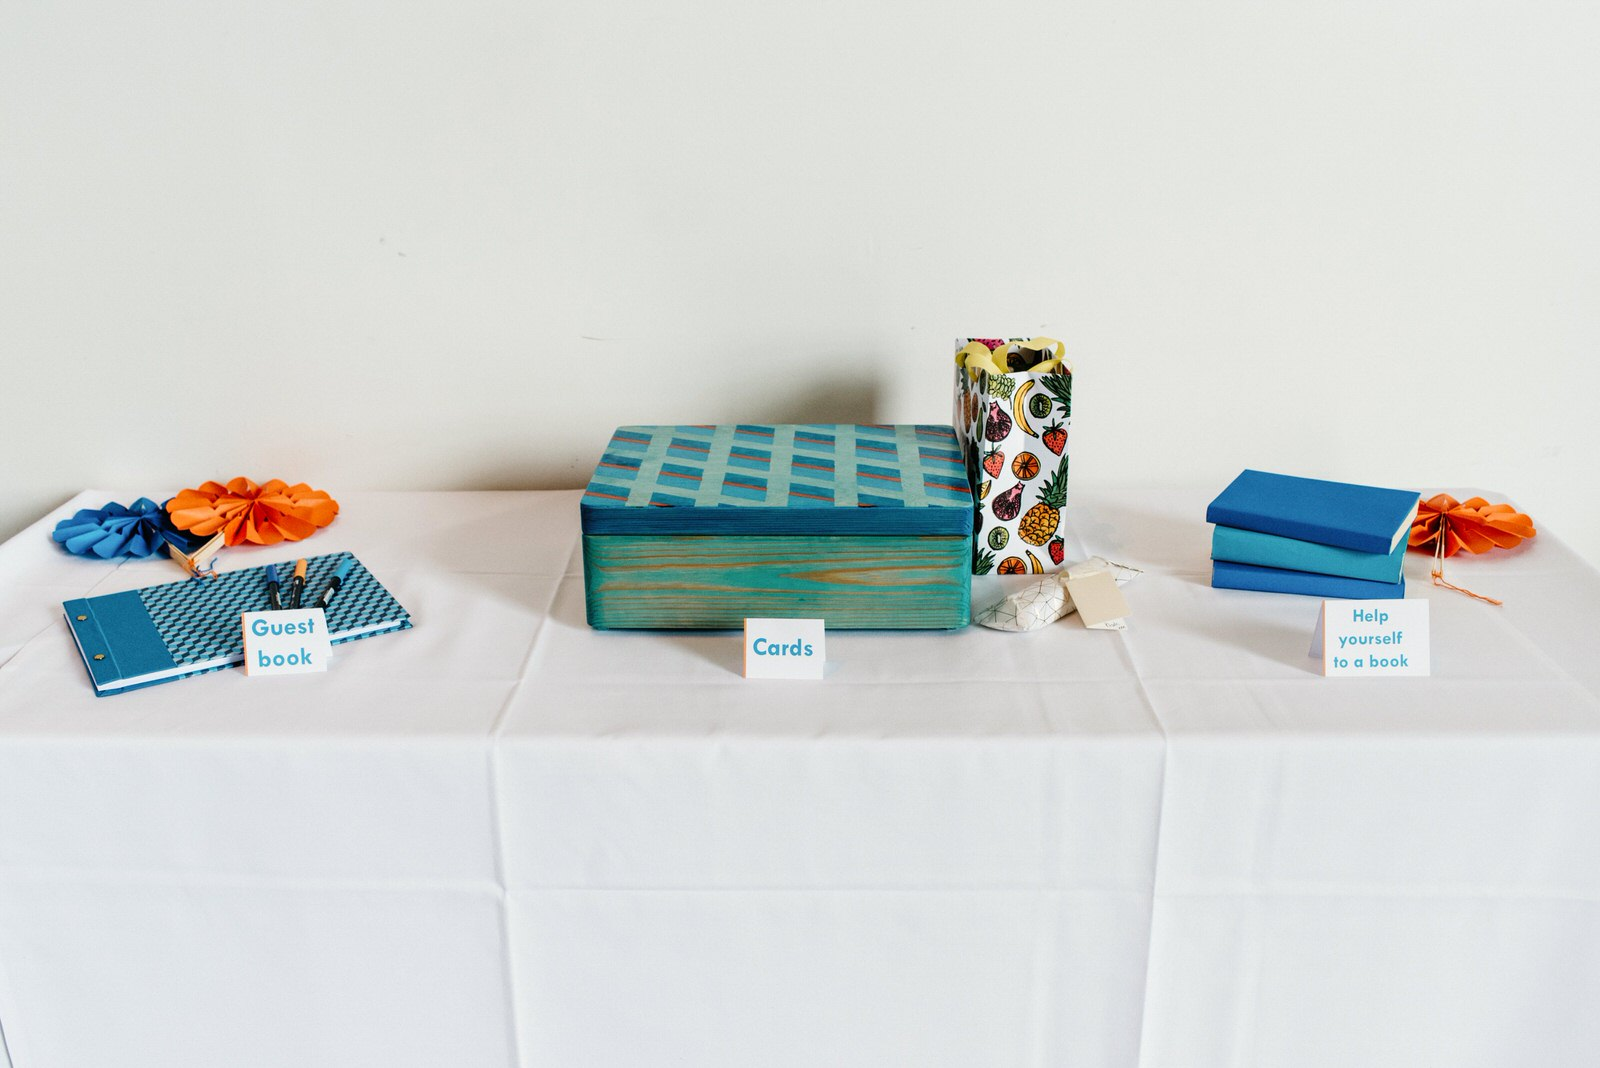 Quirky colourful decor details including guest book and place to put cards